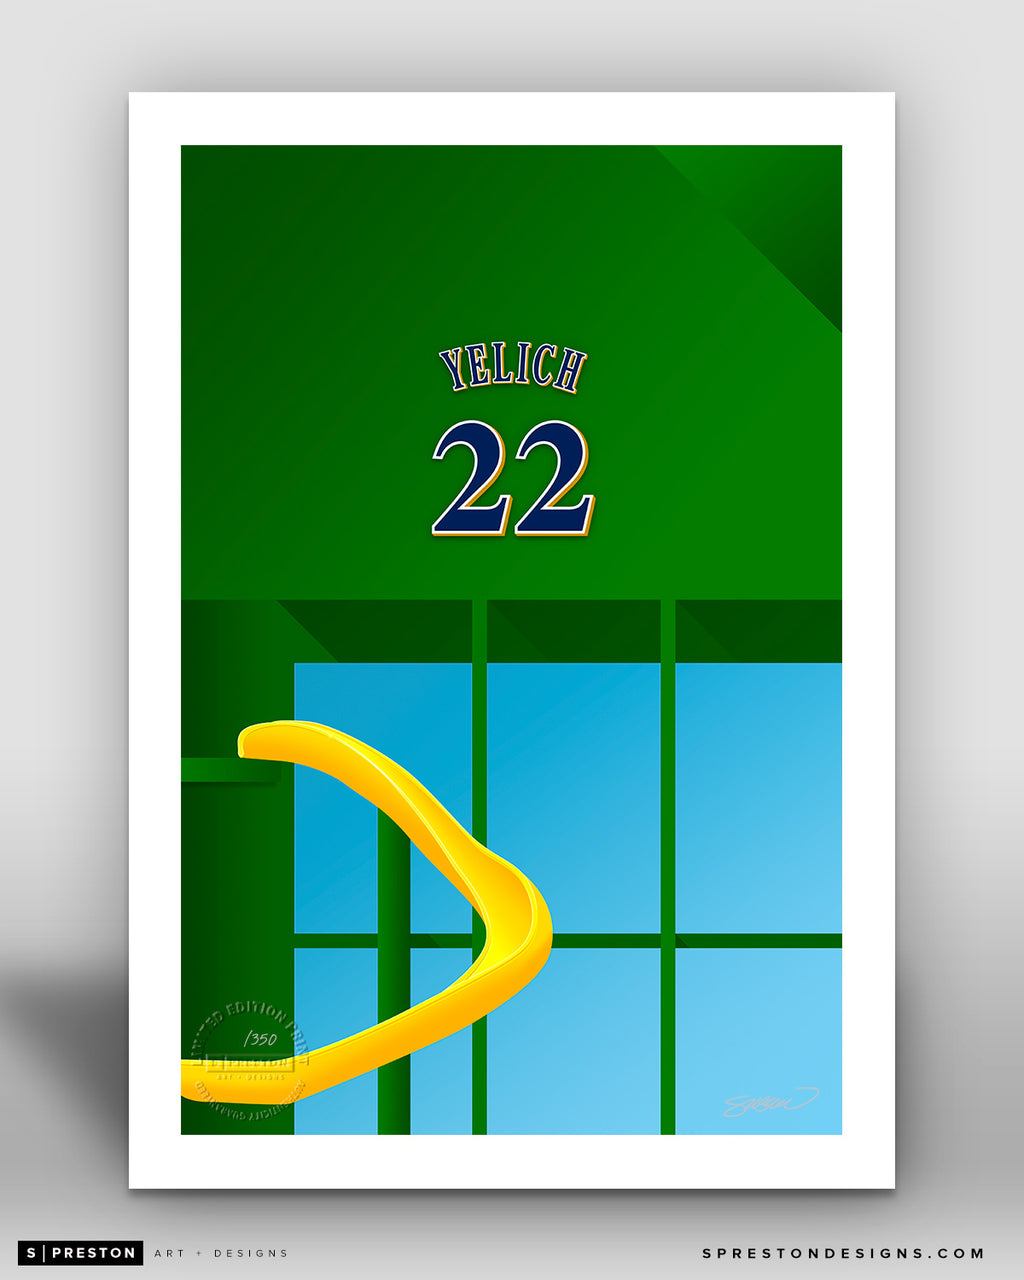 Minimalist Miller Park - Player Series - Christian Yelich - Milwaukee Brewers - S. Preston